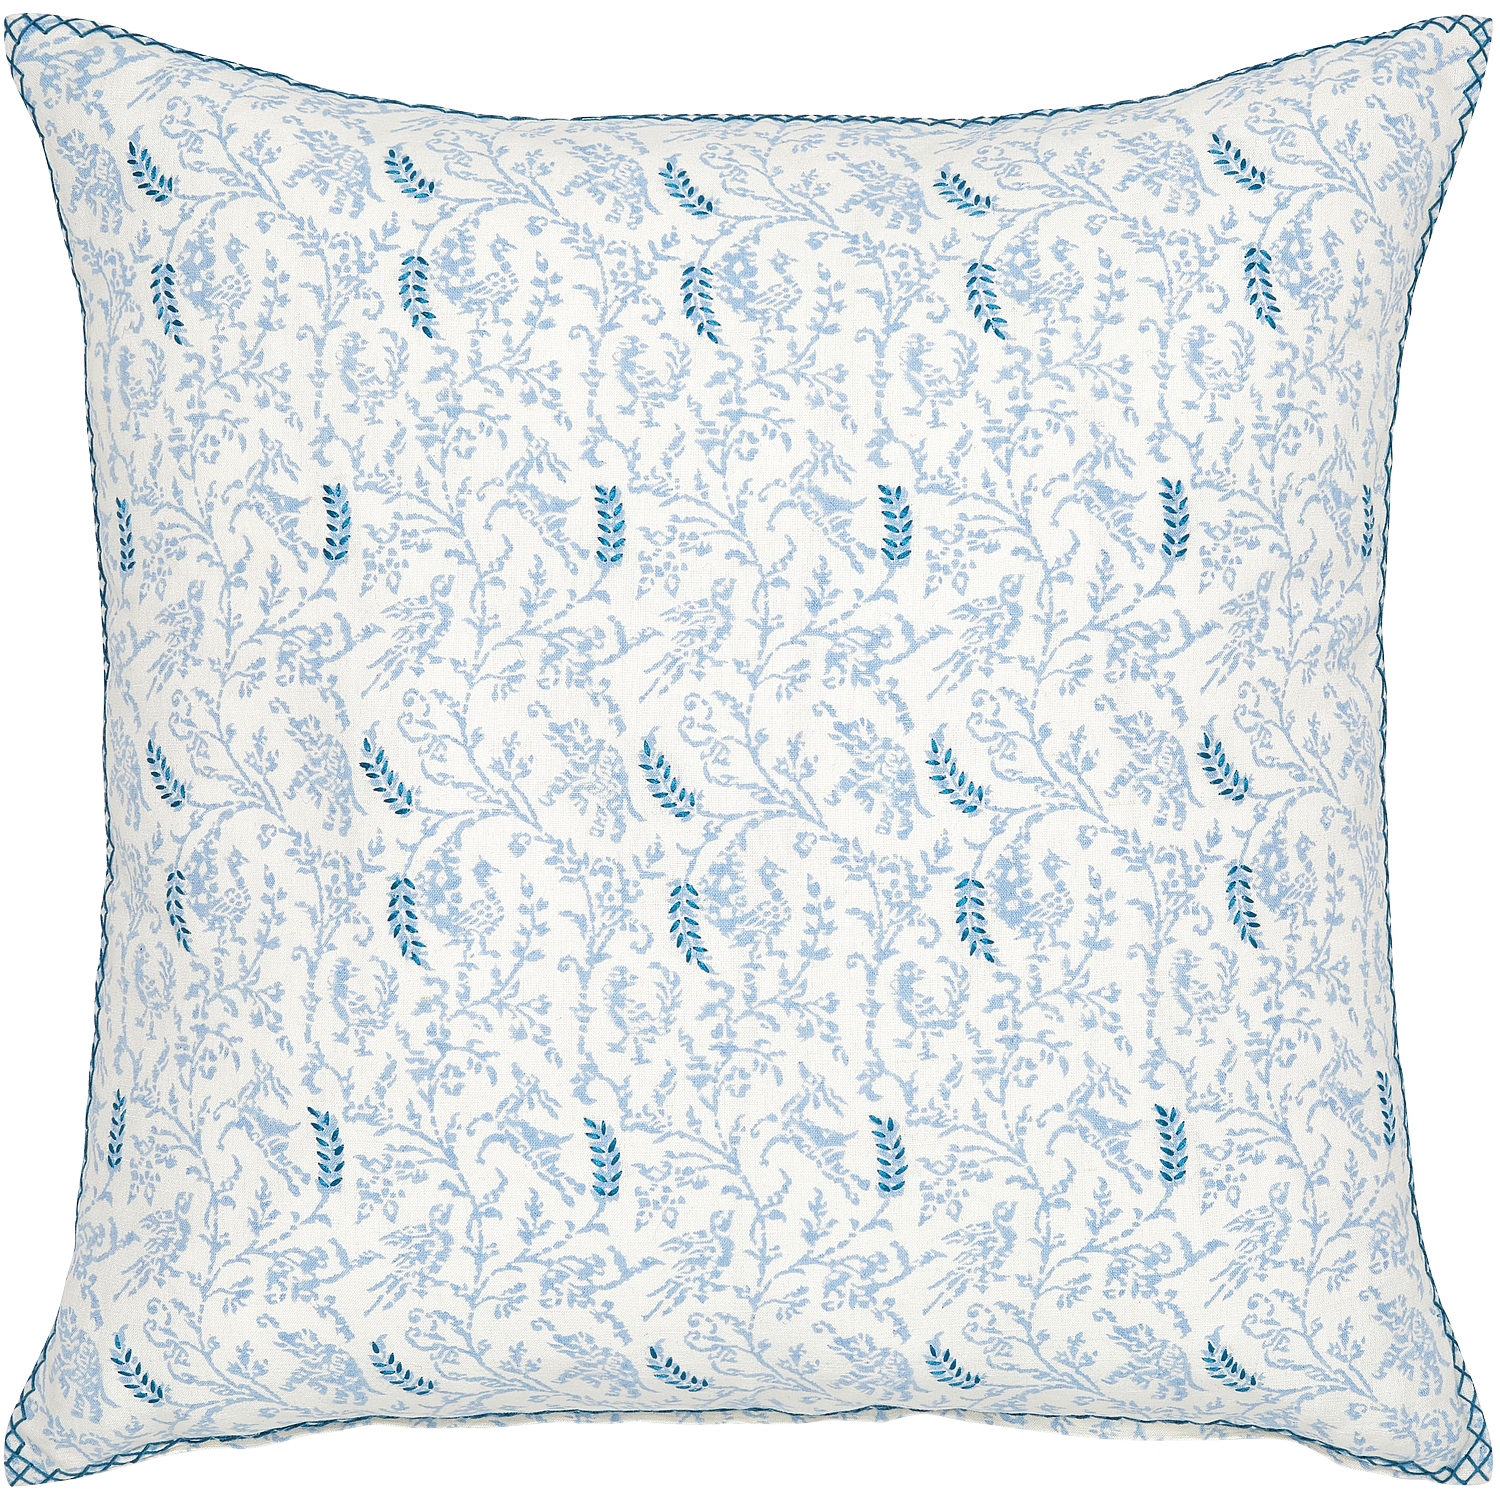 Madhavi Light Indigo Decorative Pillow w/ Insert